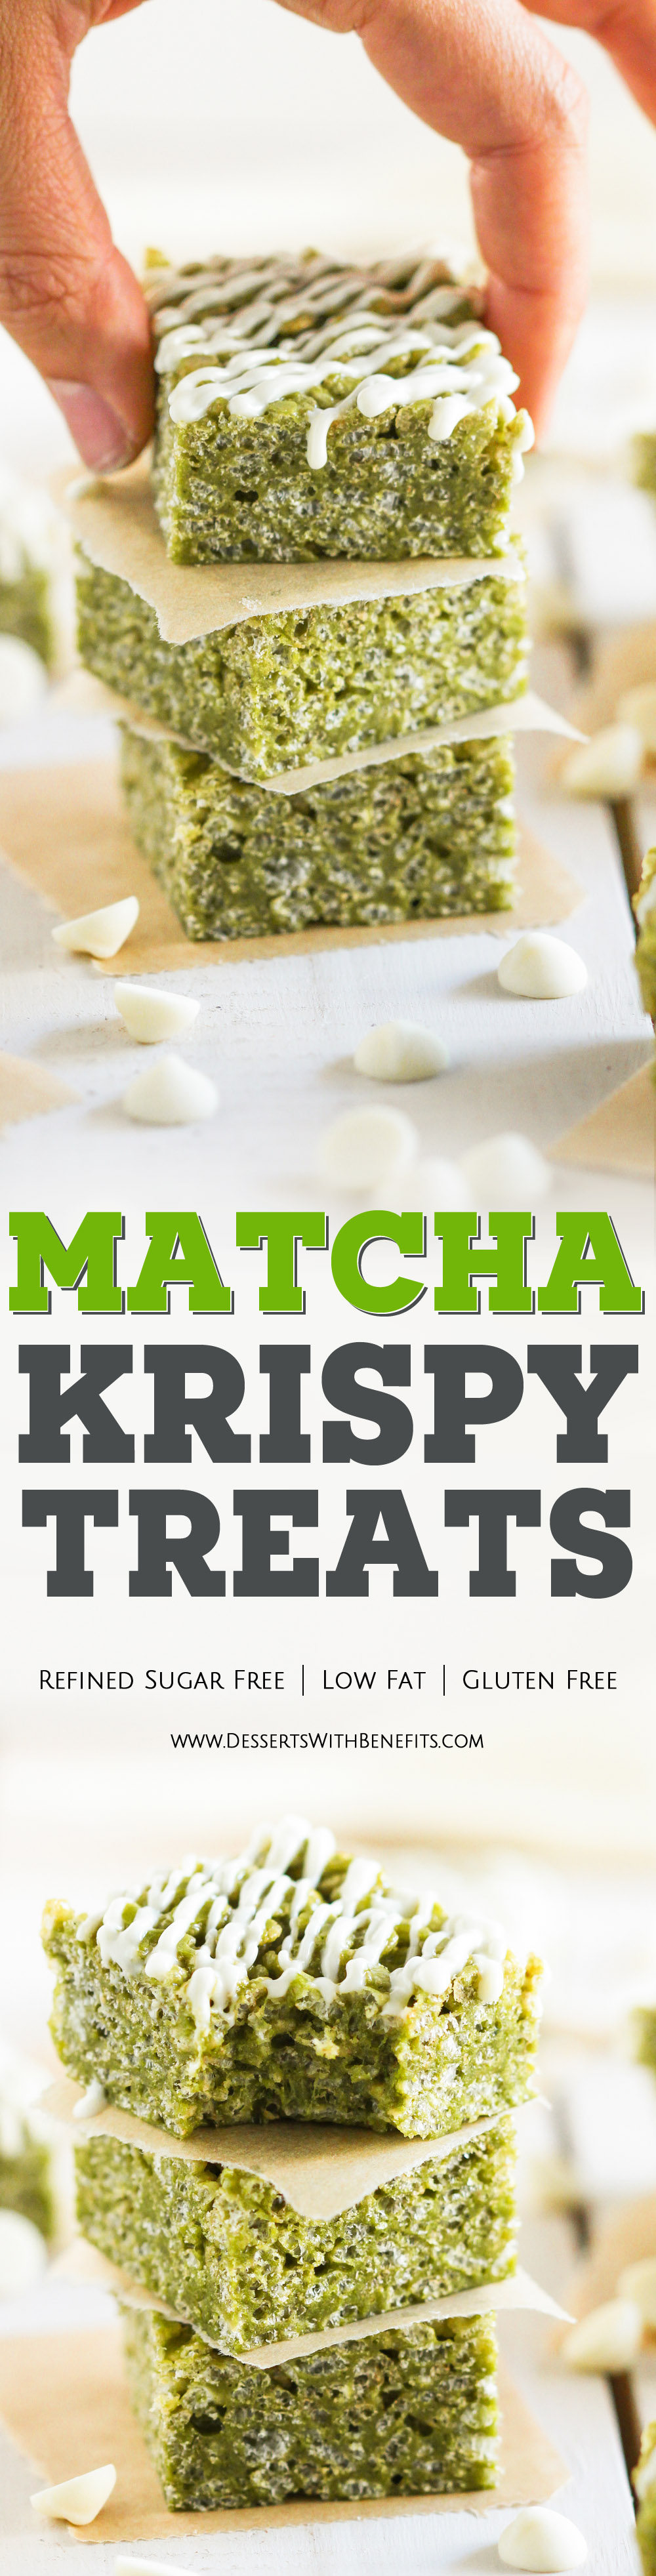 These Healthy Matcha Green Tea Krispy Treats have a subtle yet vibrant matcha flavor. They're crunchy, chewy, and perfectly sweet – it's heaven in a little square package! You'd never know they're refined sugar free, low fat, and gluten free. Healthy Dessert Recipes at the Desserts With Benefits Blog